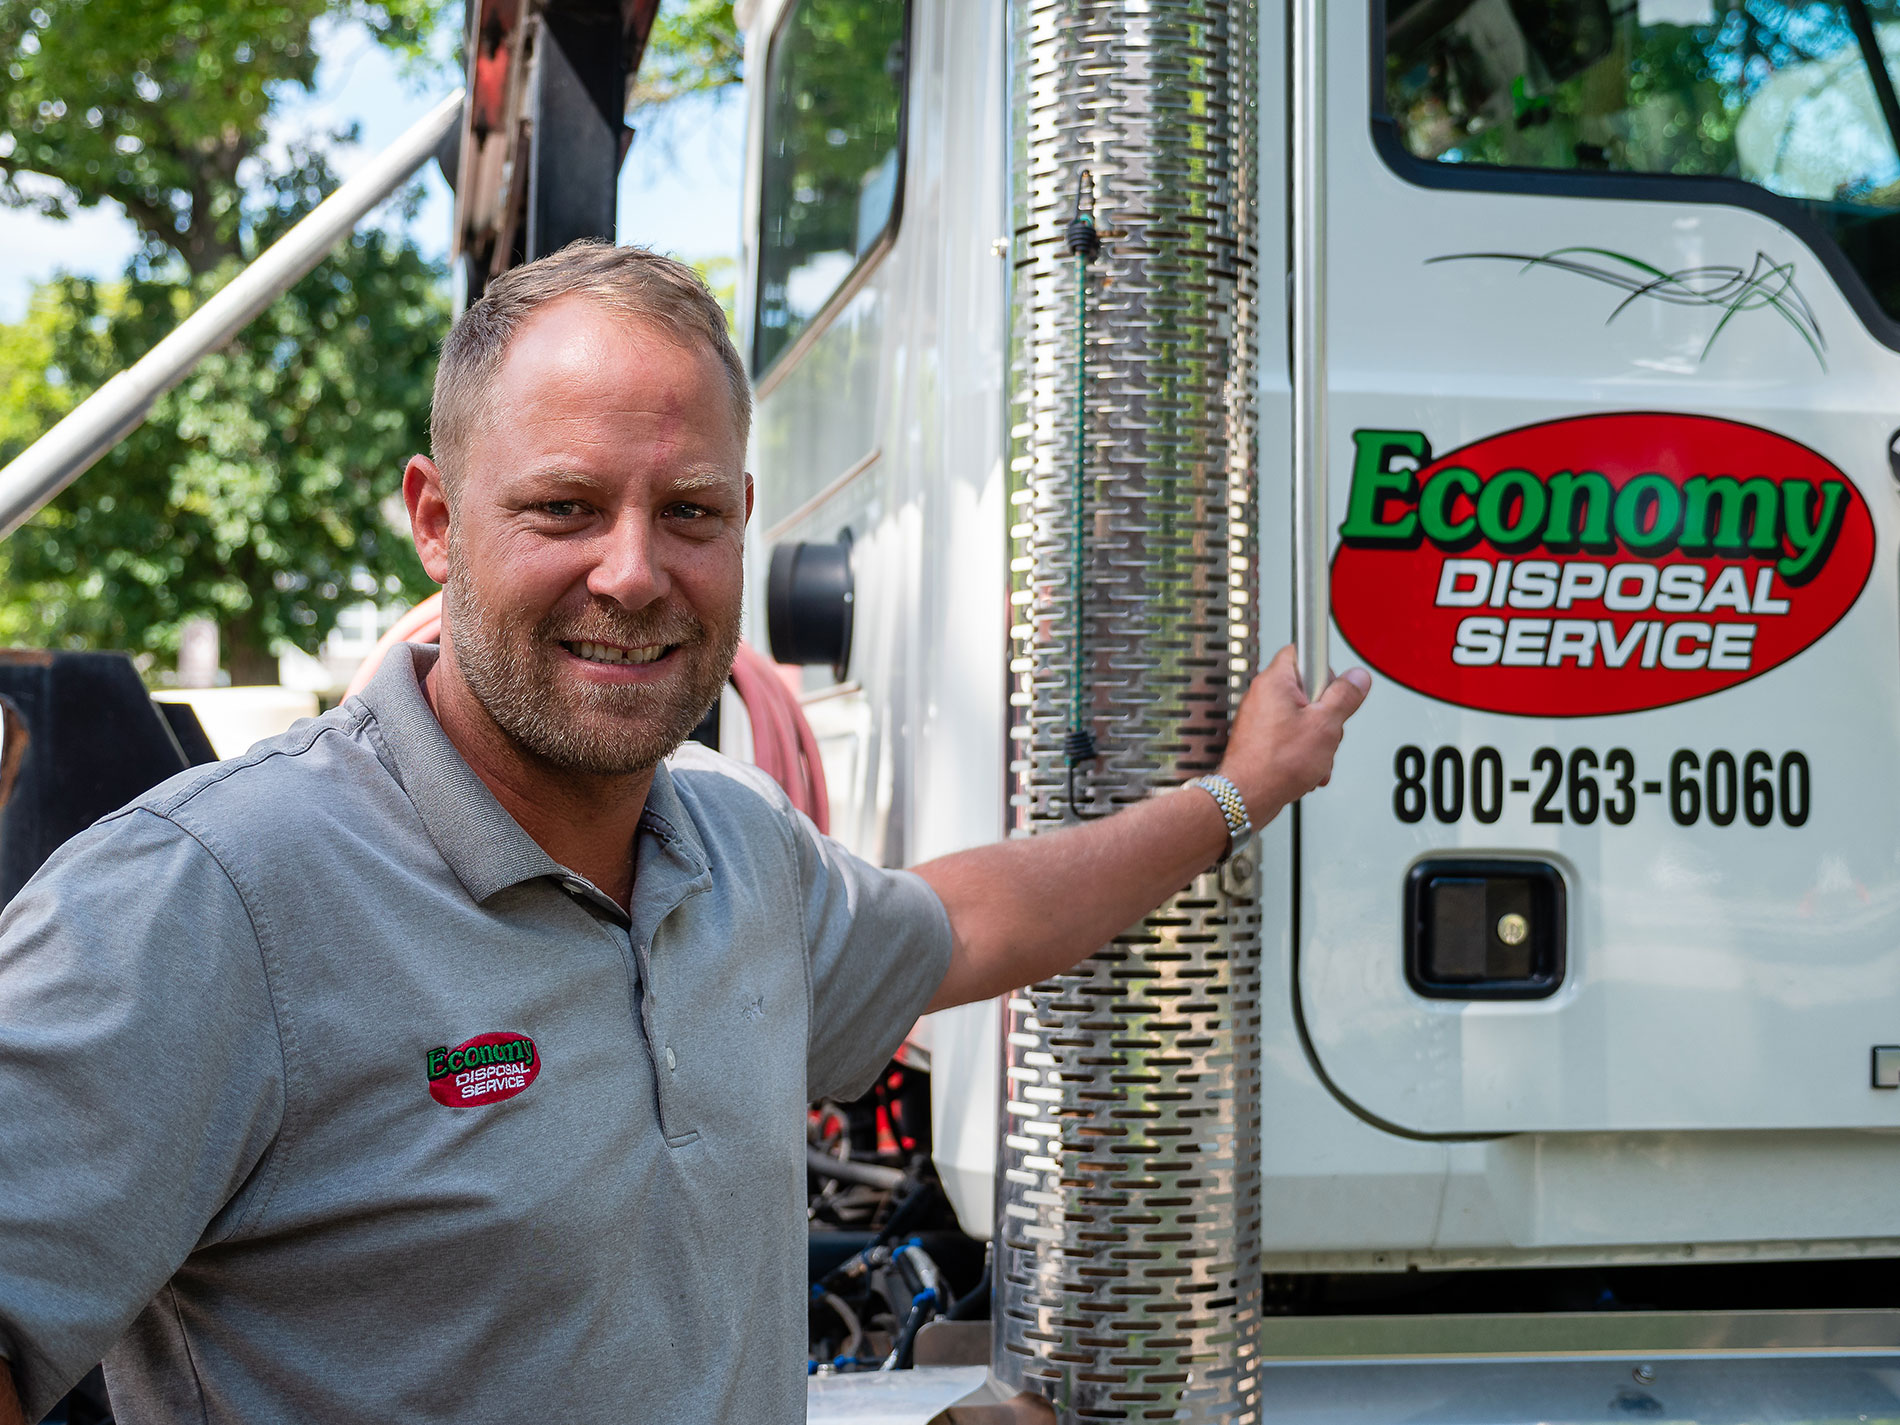 Photo of Ron Tazelaar, Owner of Economy Disposal Service